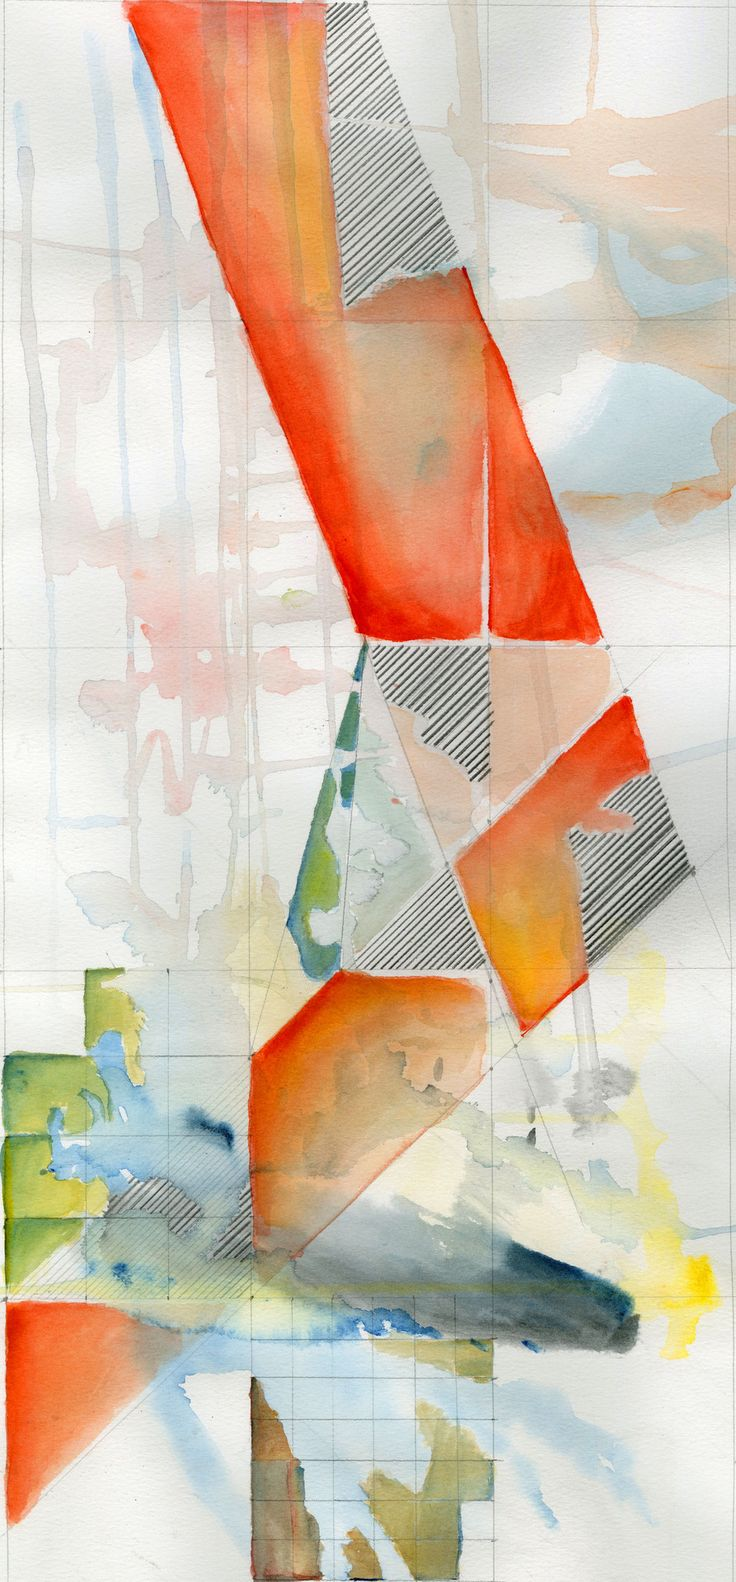 """Diana C Duran, USF School of Architecture, Class of 2013 Master Project I: """"Reciprocity Analysis II"""" - Fall 2012, Prof. Steve Cooke An investigation of the reciprocity forces between architecture and culture."""